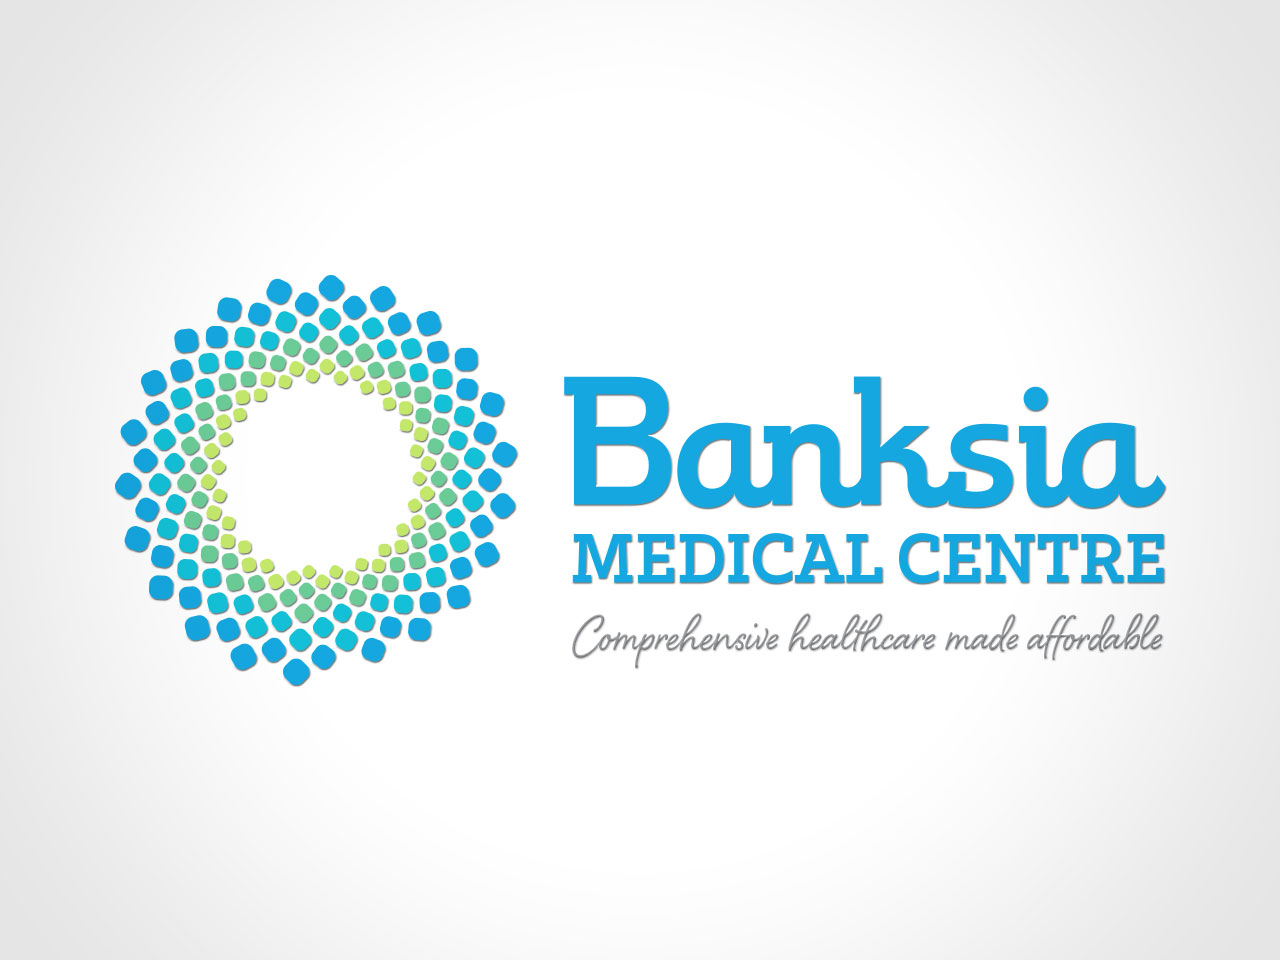 BANKSIA MEDICAL CENTRE - Brand Identity. Morrison Design, Graphic Design and Branding Agency Geelong, Melbourne, VIC.